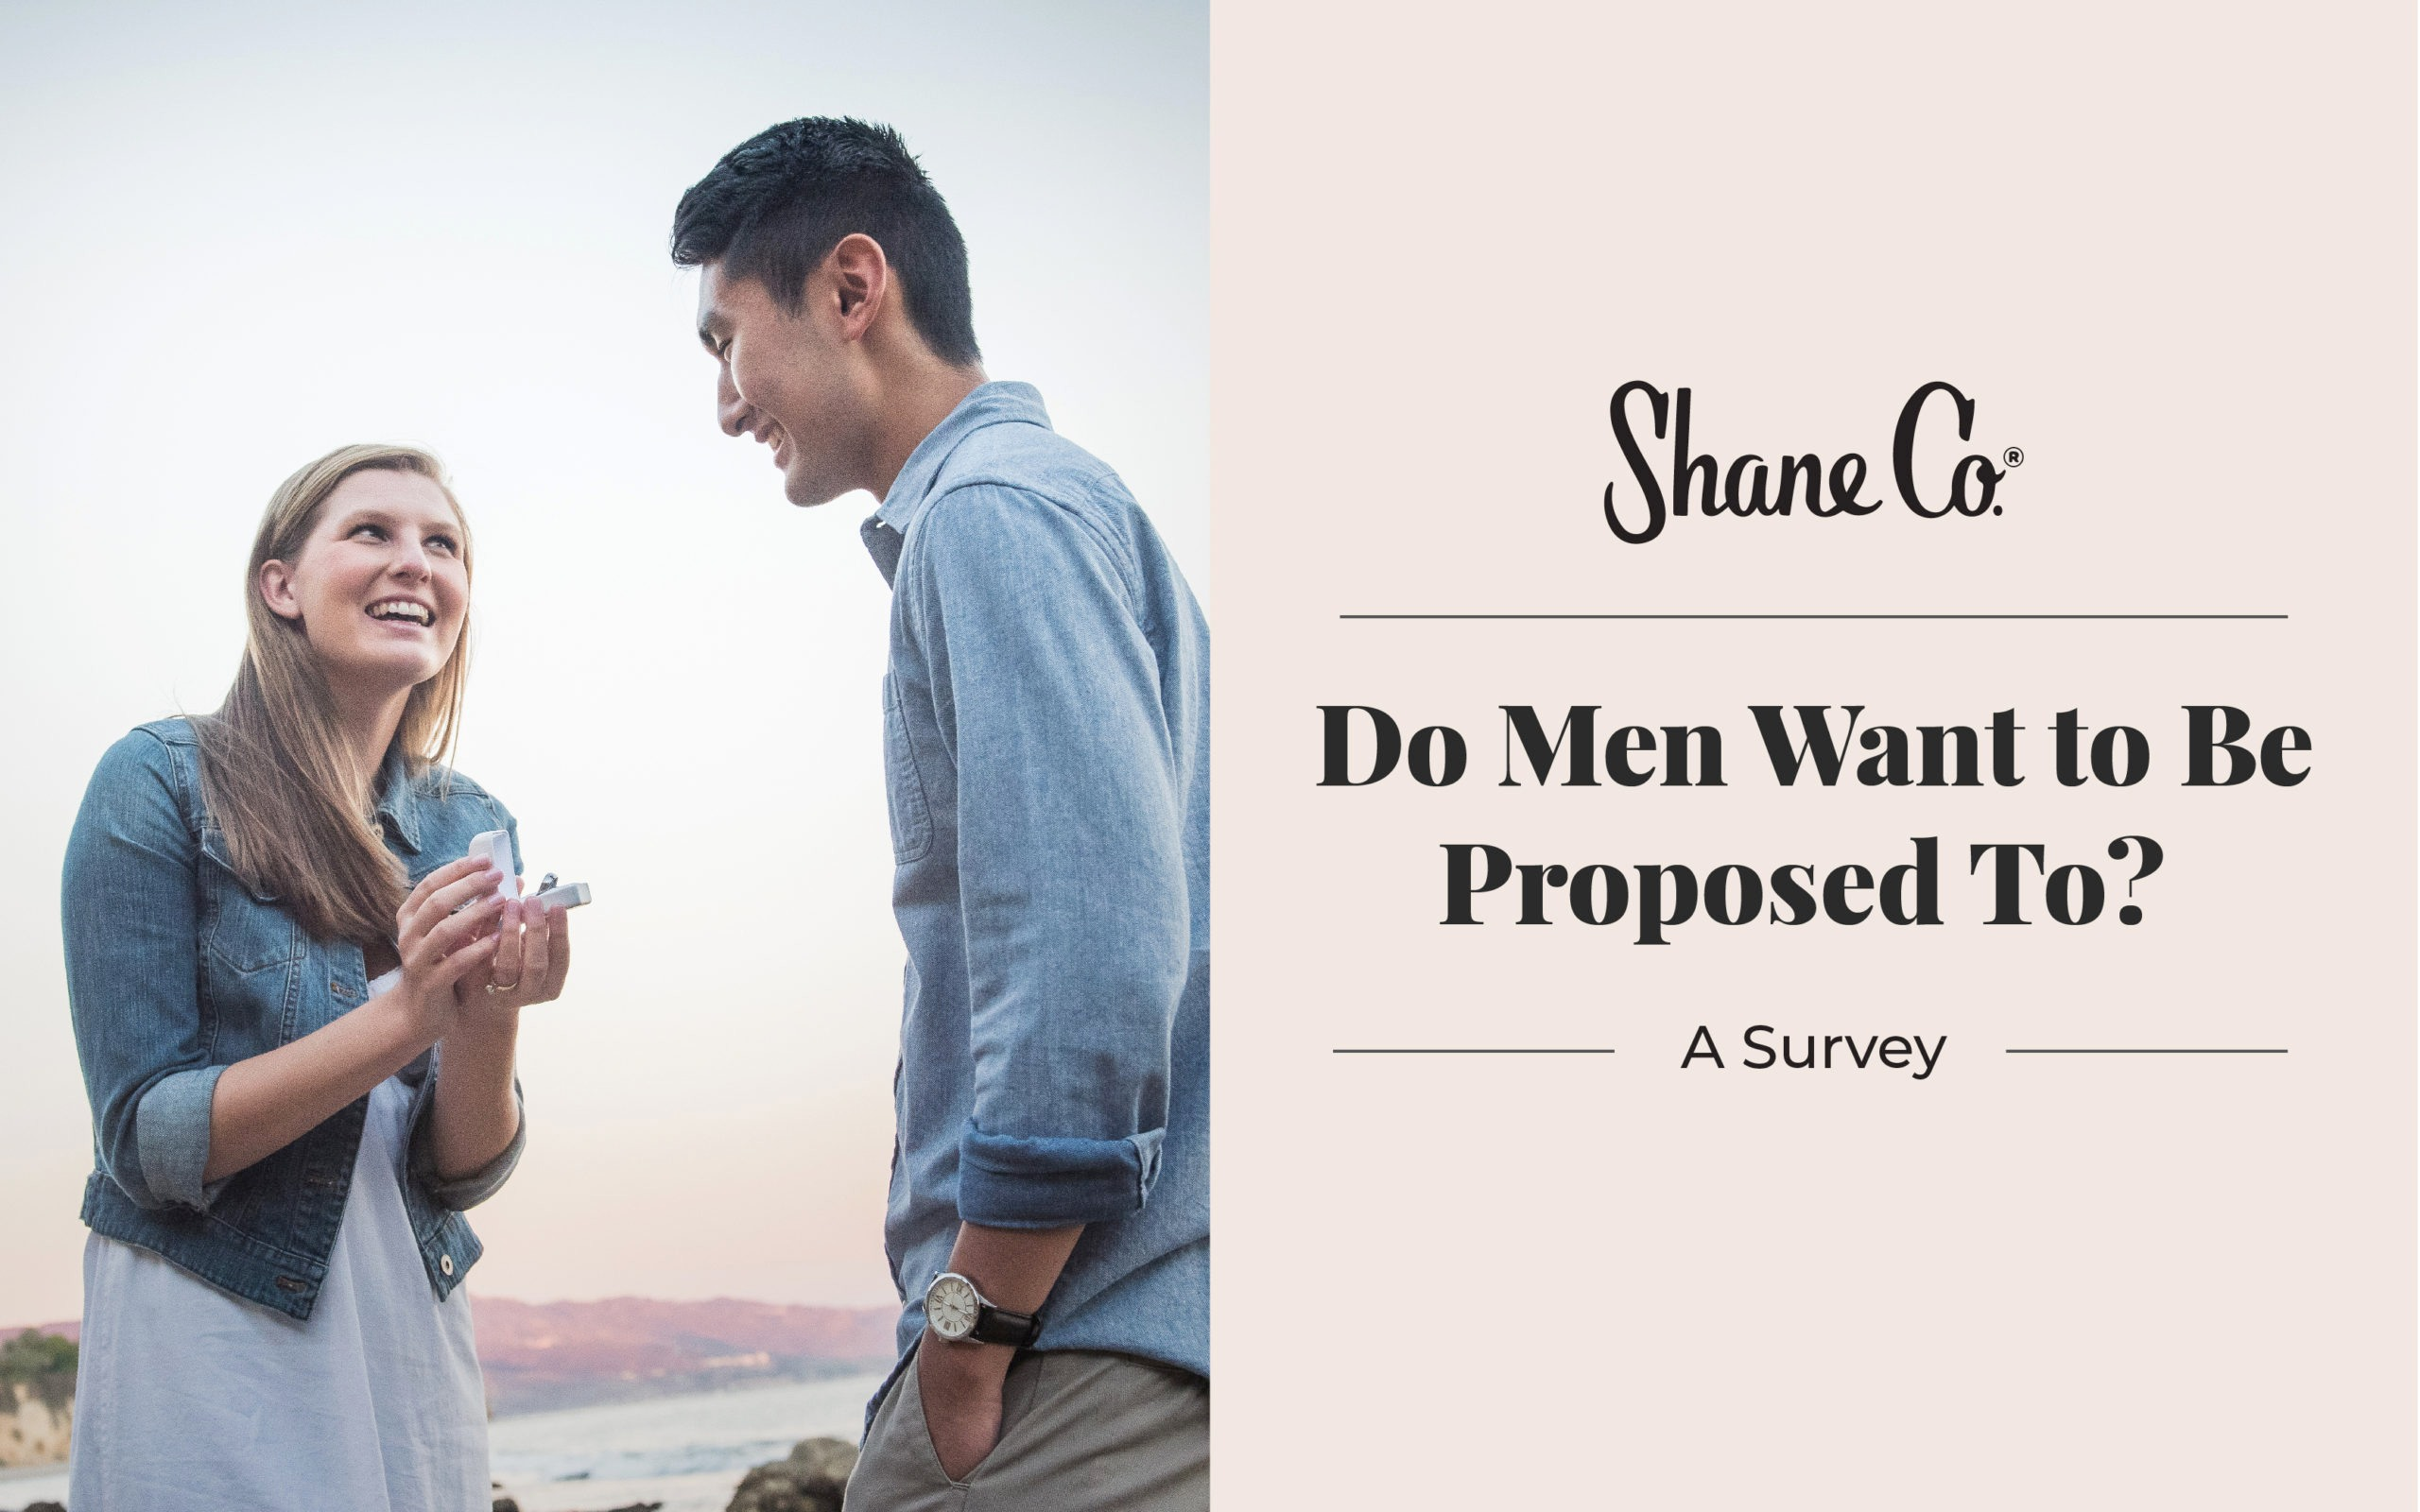 Do men want to be proposed to? A survey